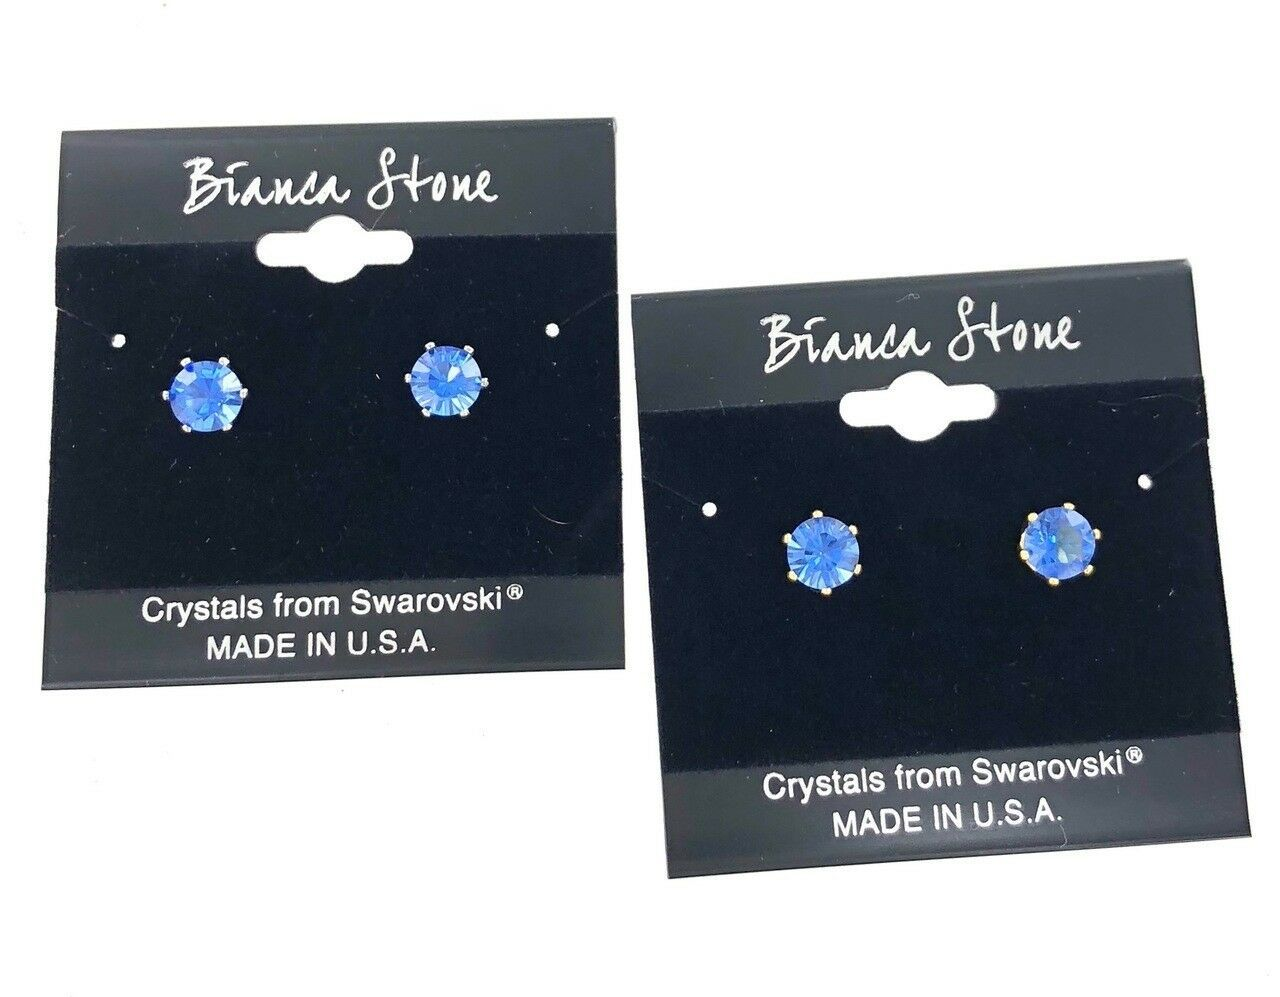 Bianca Stone September Birthstone Stud Earrings With Crystals Made By Swarovski